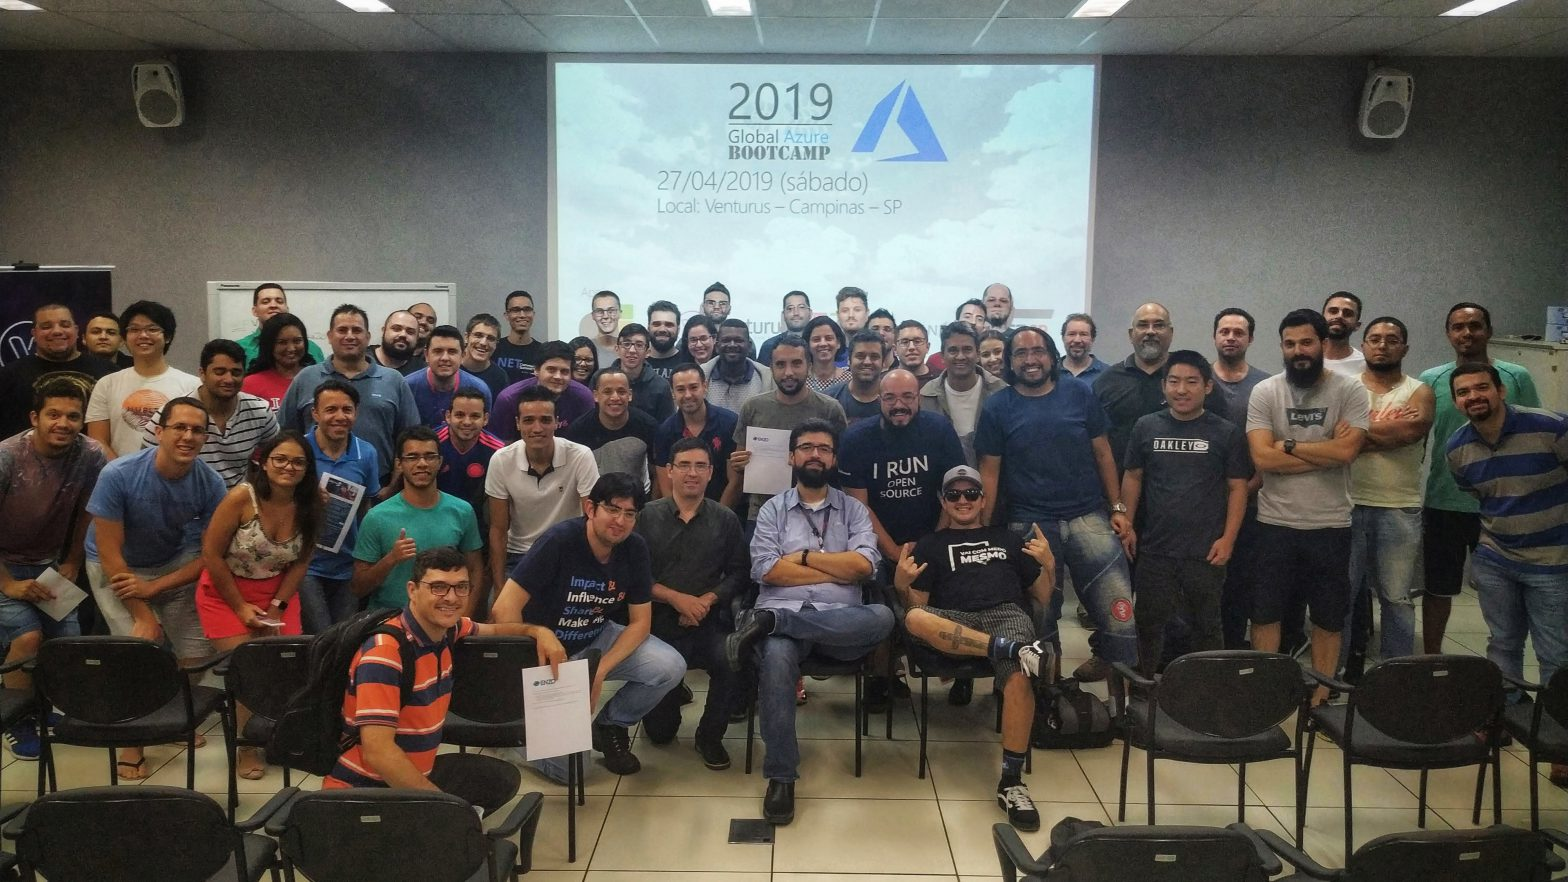 Global Azure Bootcamp 2019 – Campinas